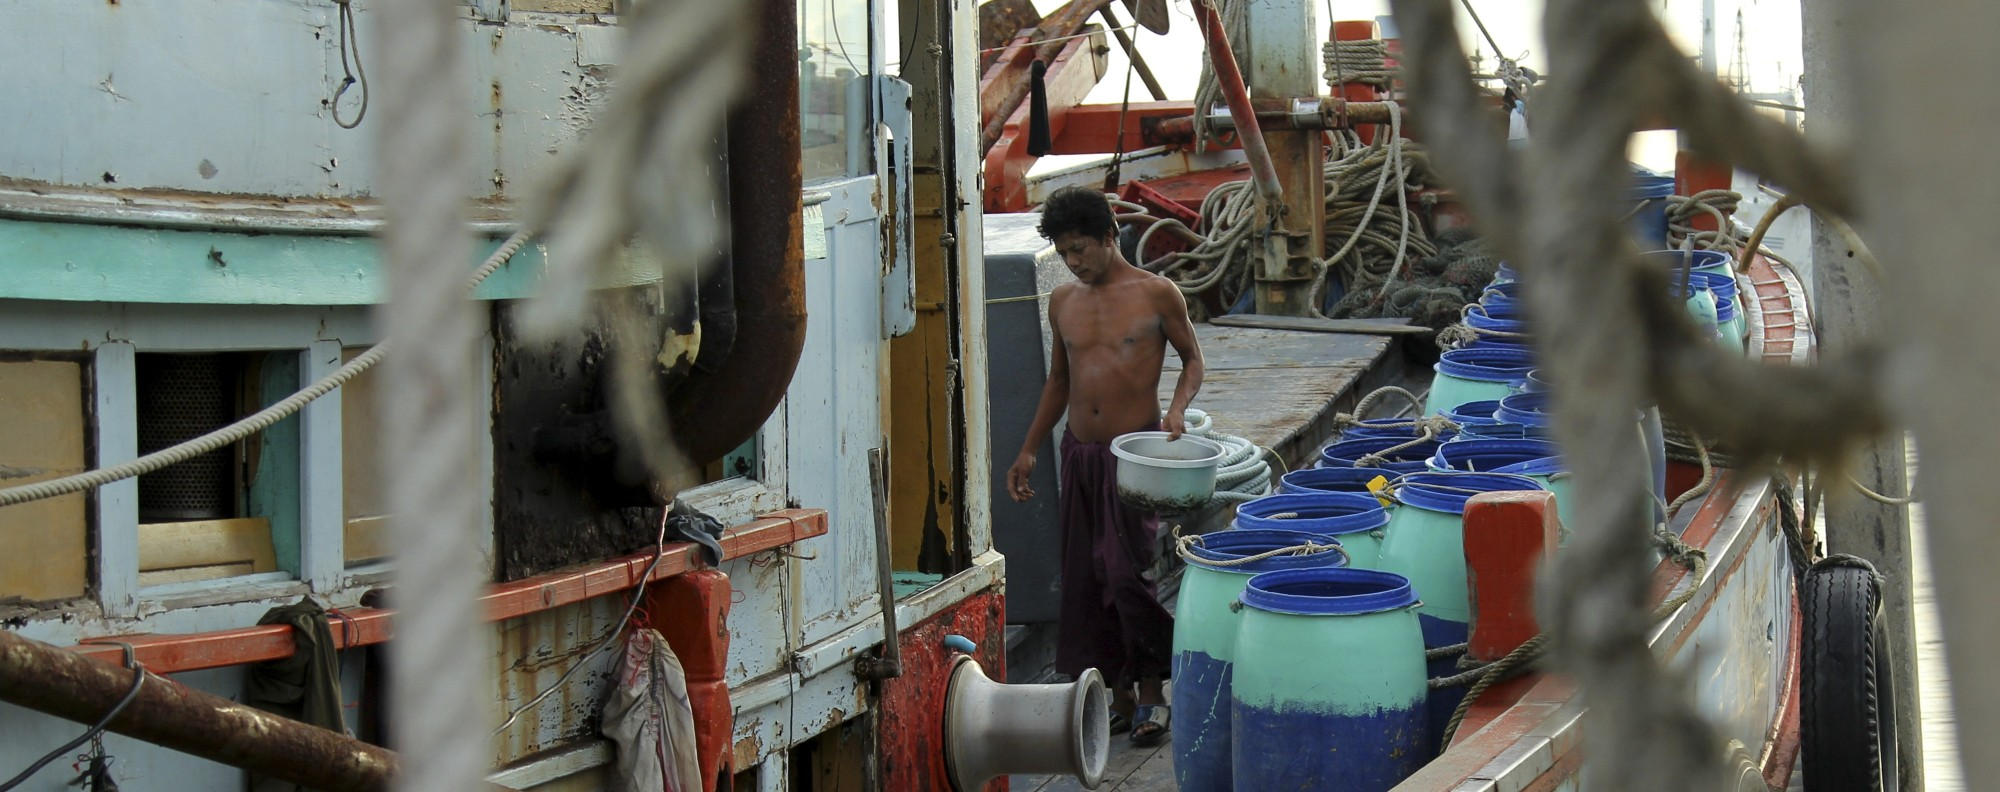 A migrant from Myanmar cleans a fishing vessel in Mahachai. Photo: Laura Villadiego